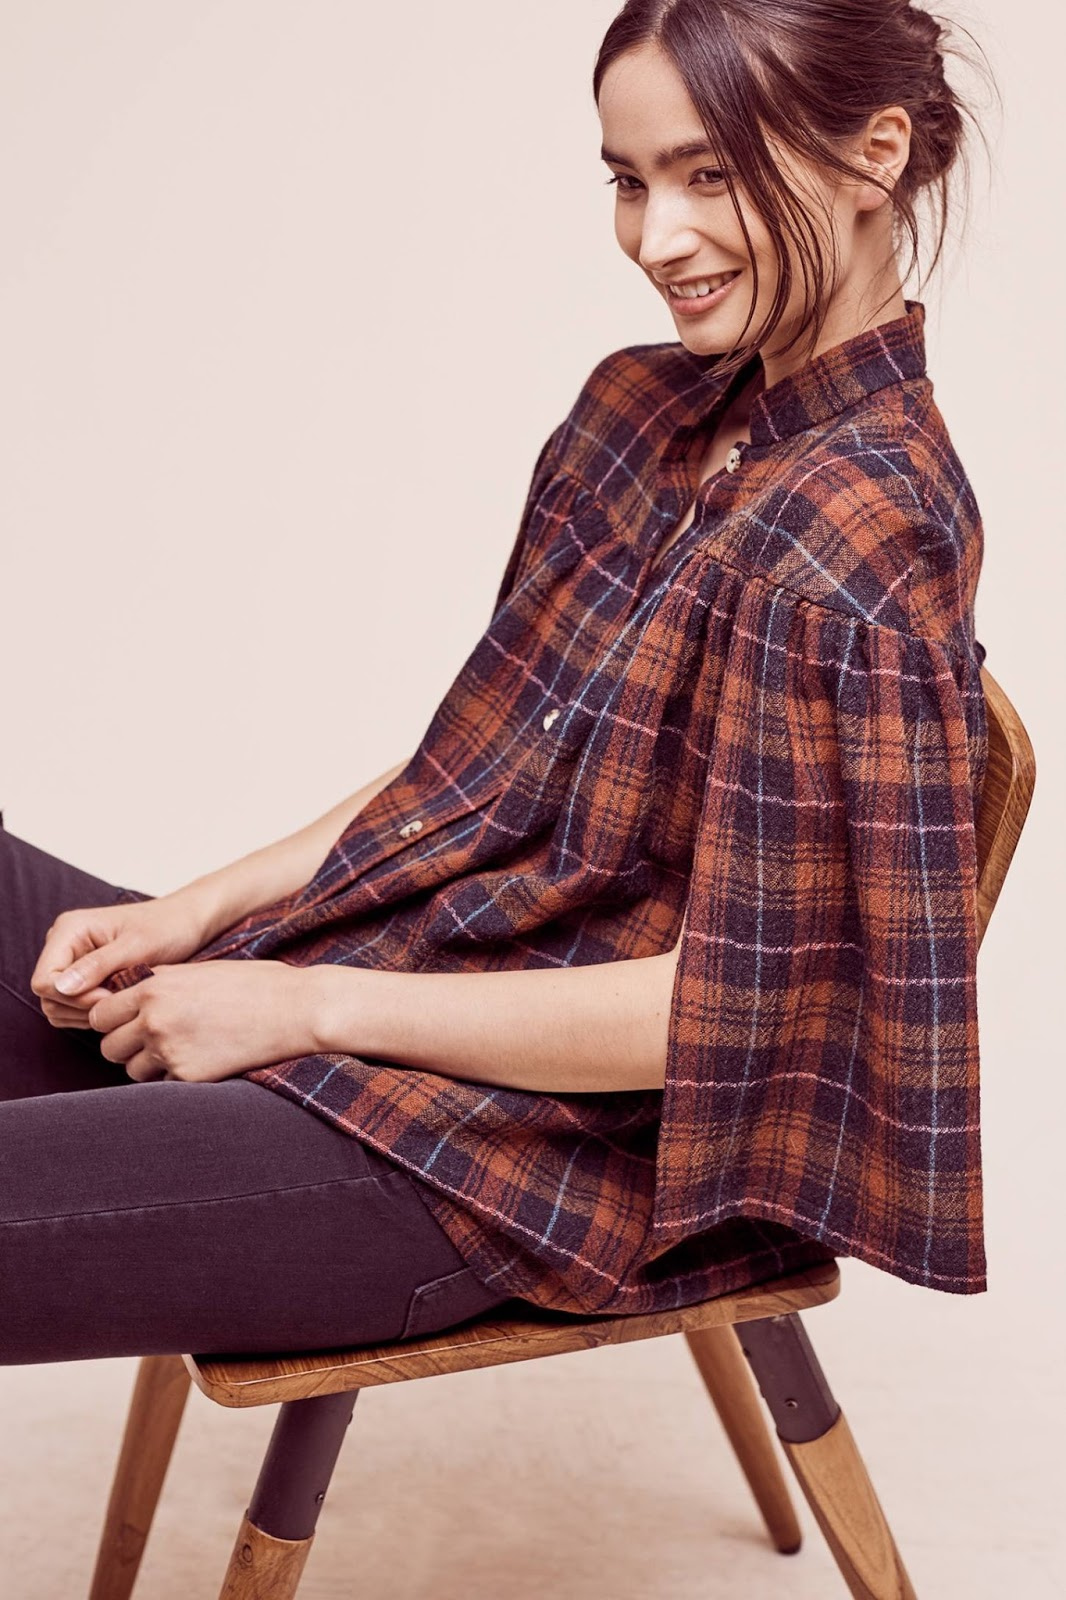 My top fall picks from Anthropologie include this gorgeous wool top, Tess.